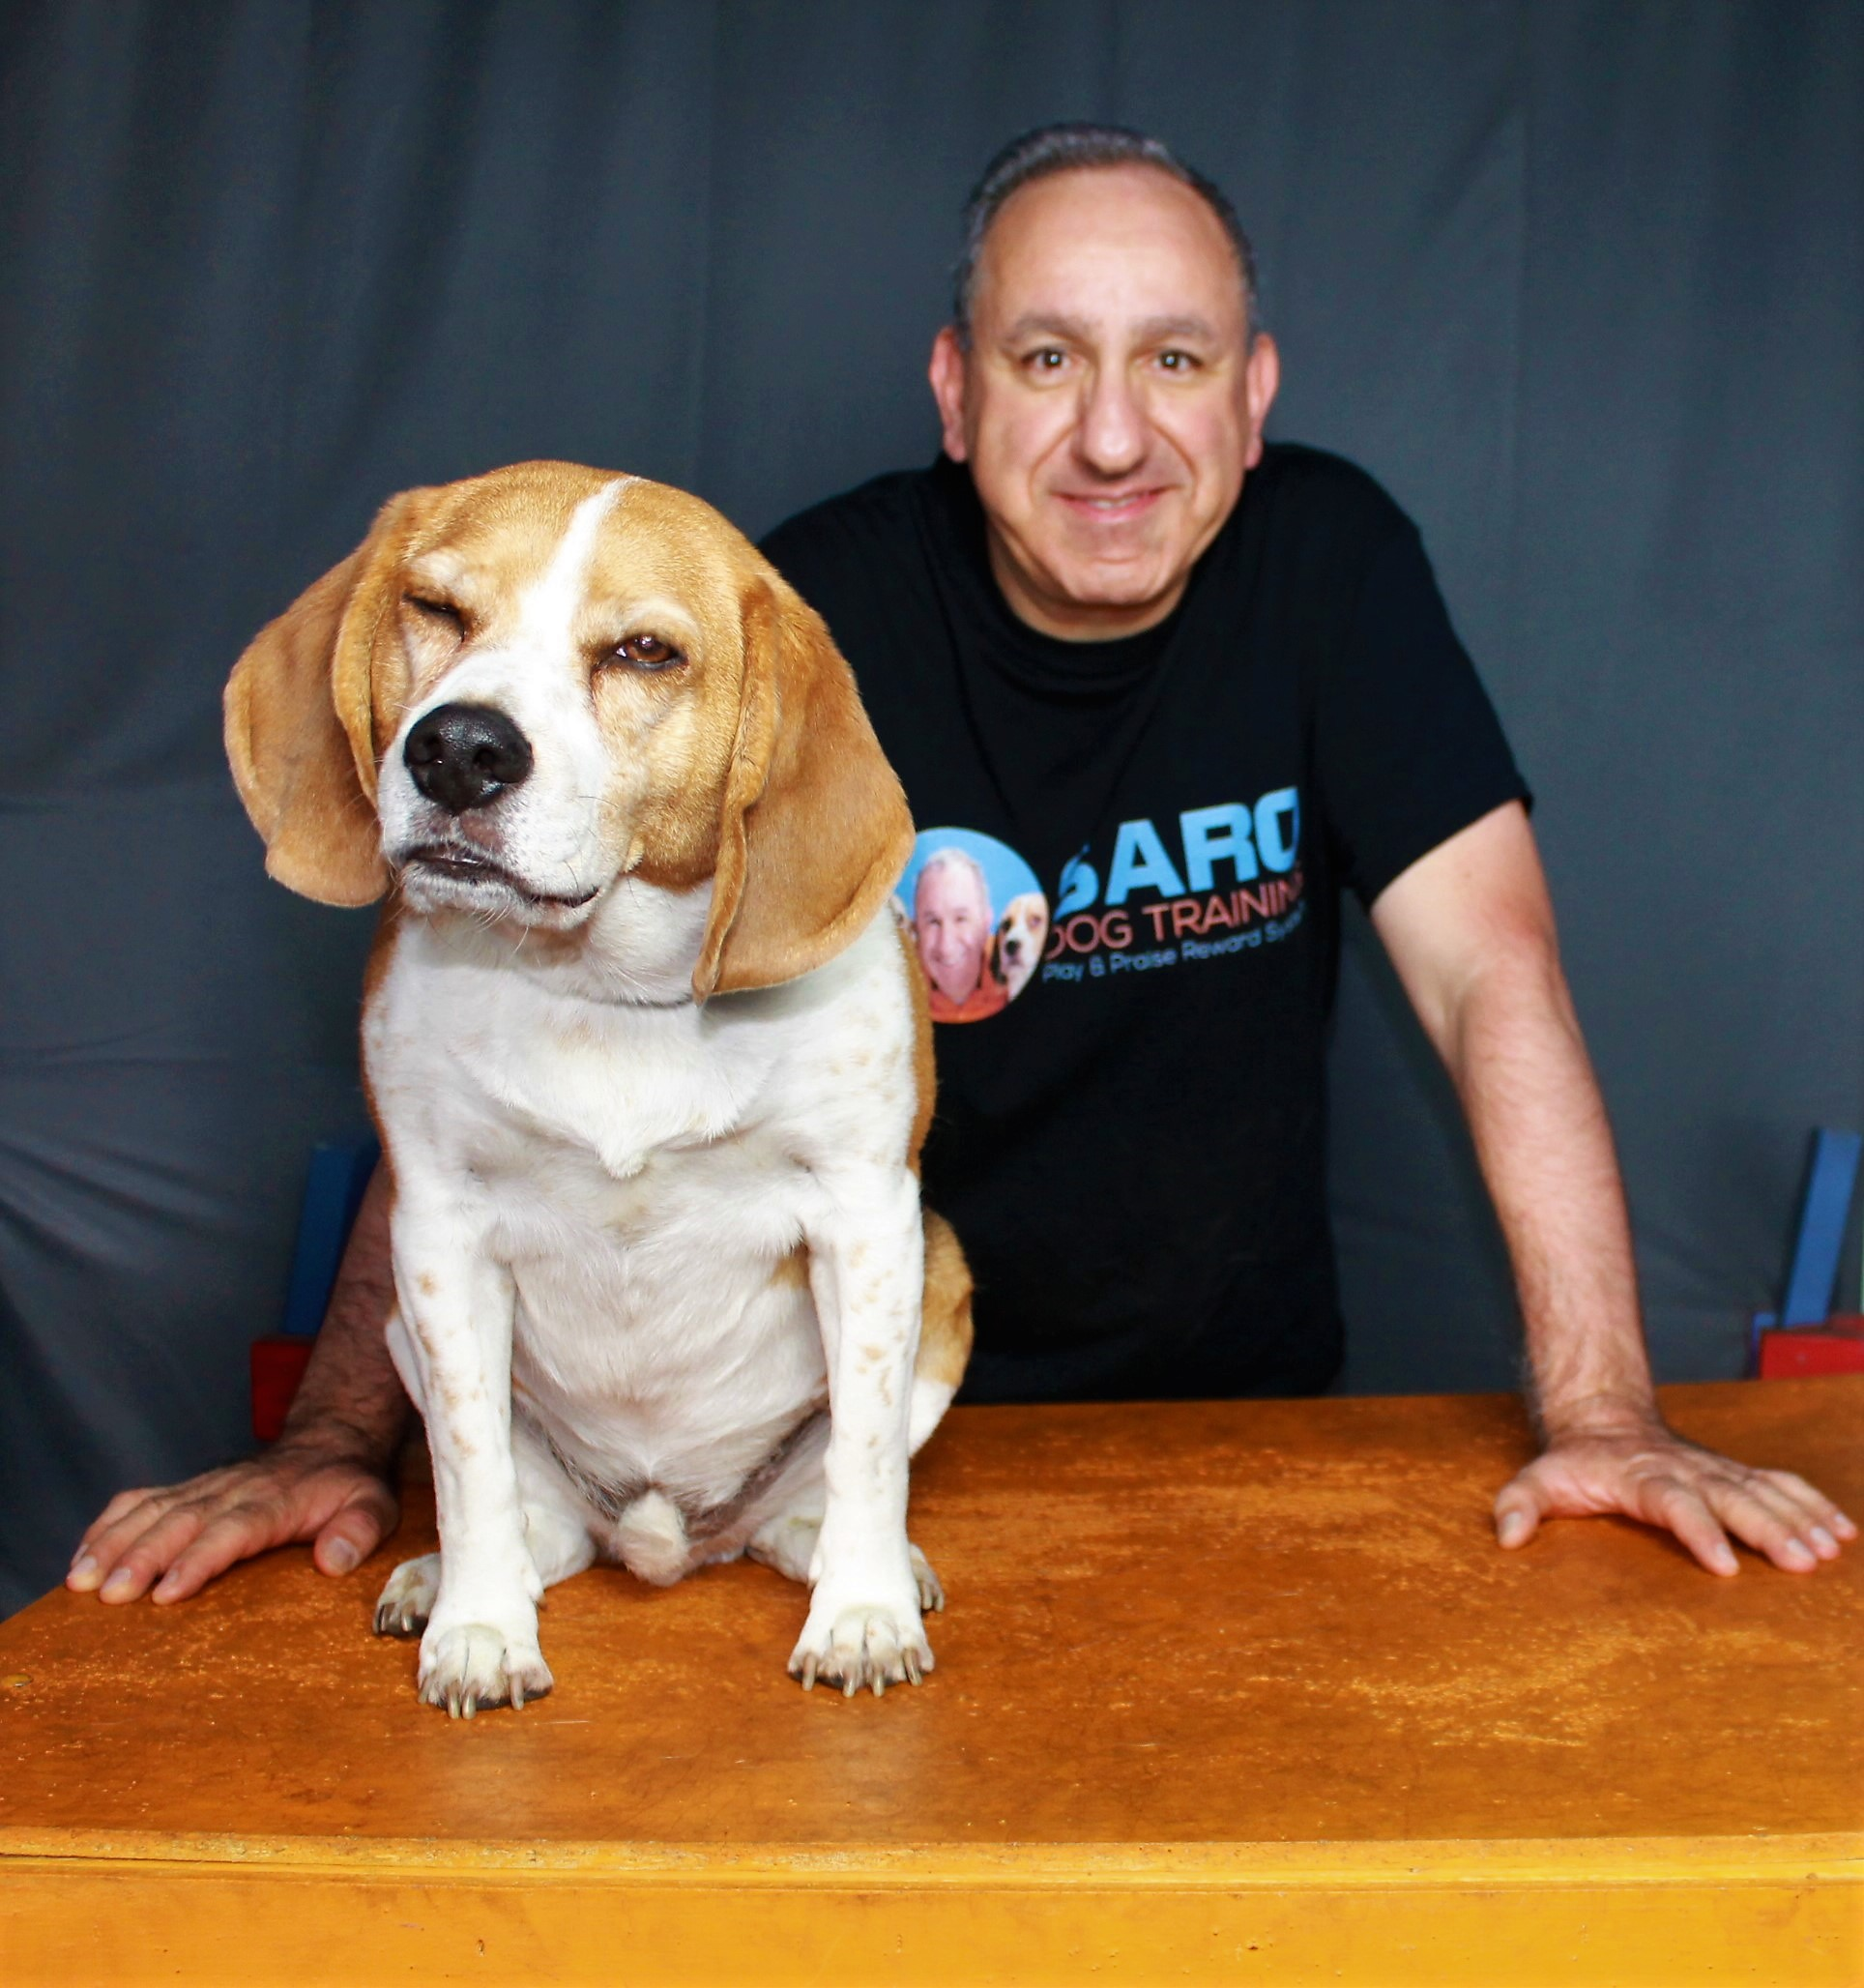 Saro Dog Training's Podcast